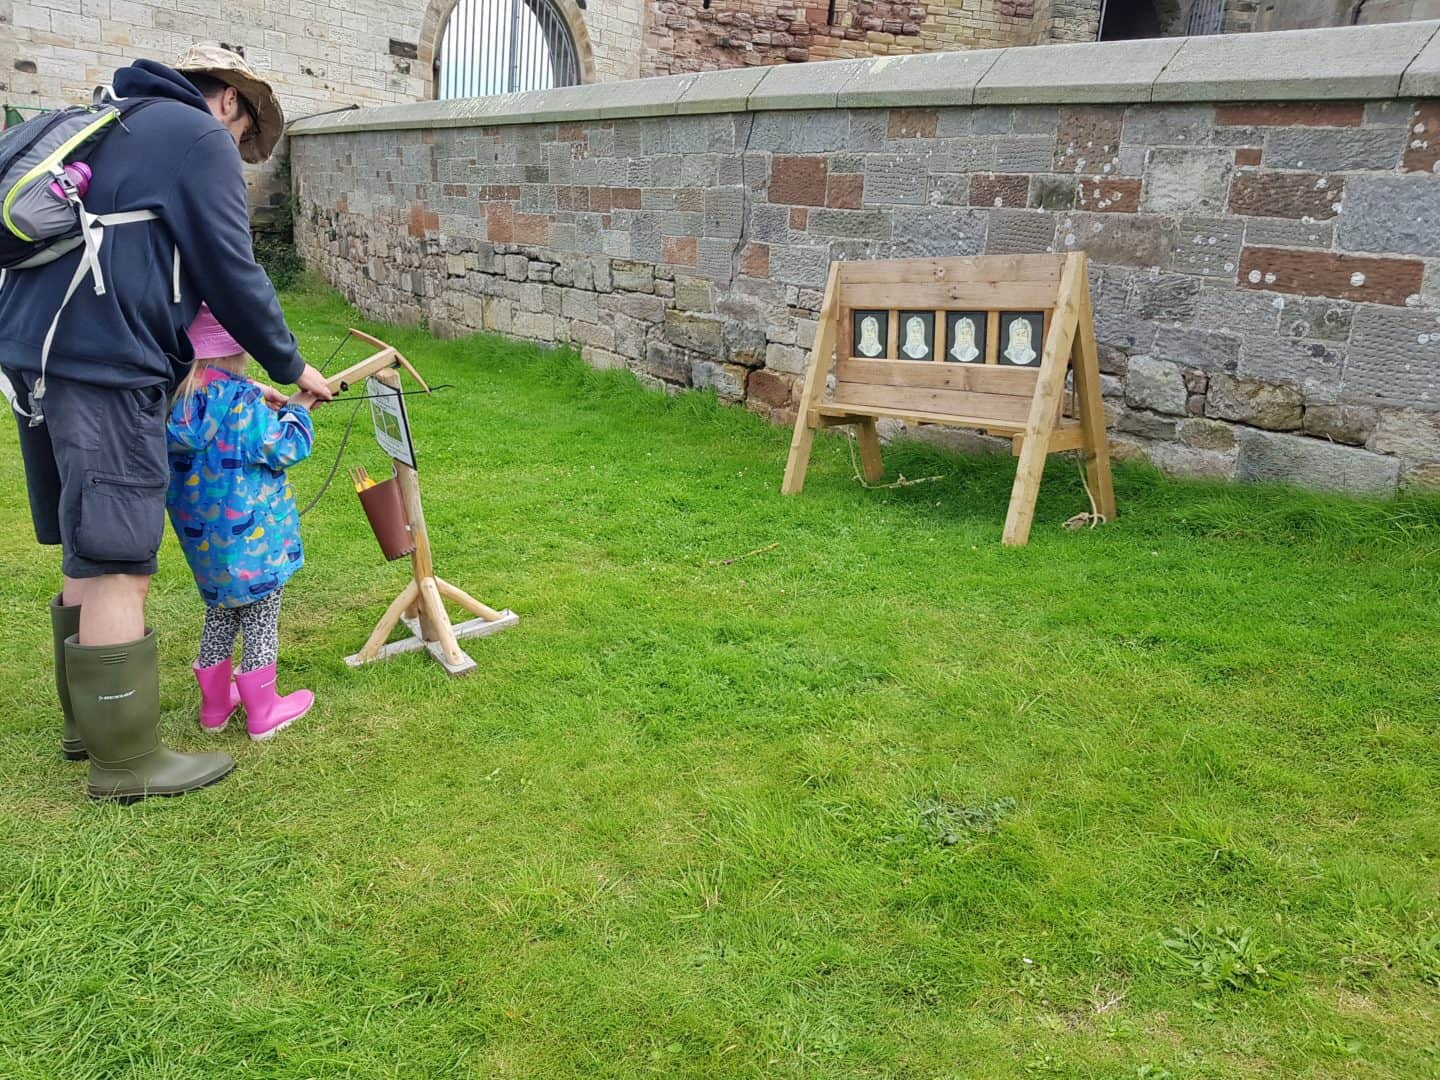 Child doing archery with a toy crossbow at Bamburgh Castle, helped by her dad